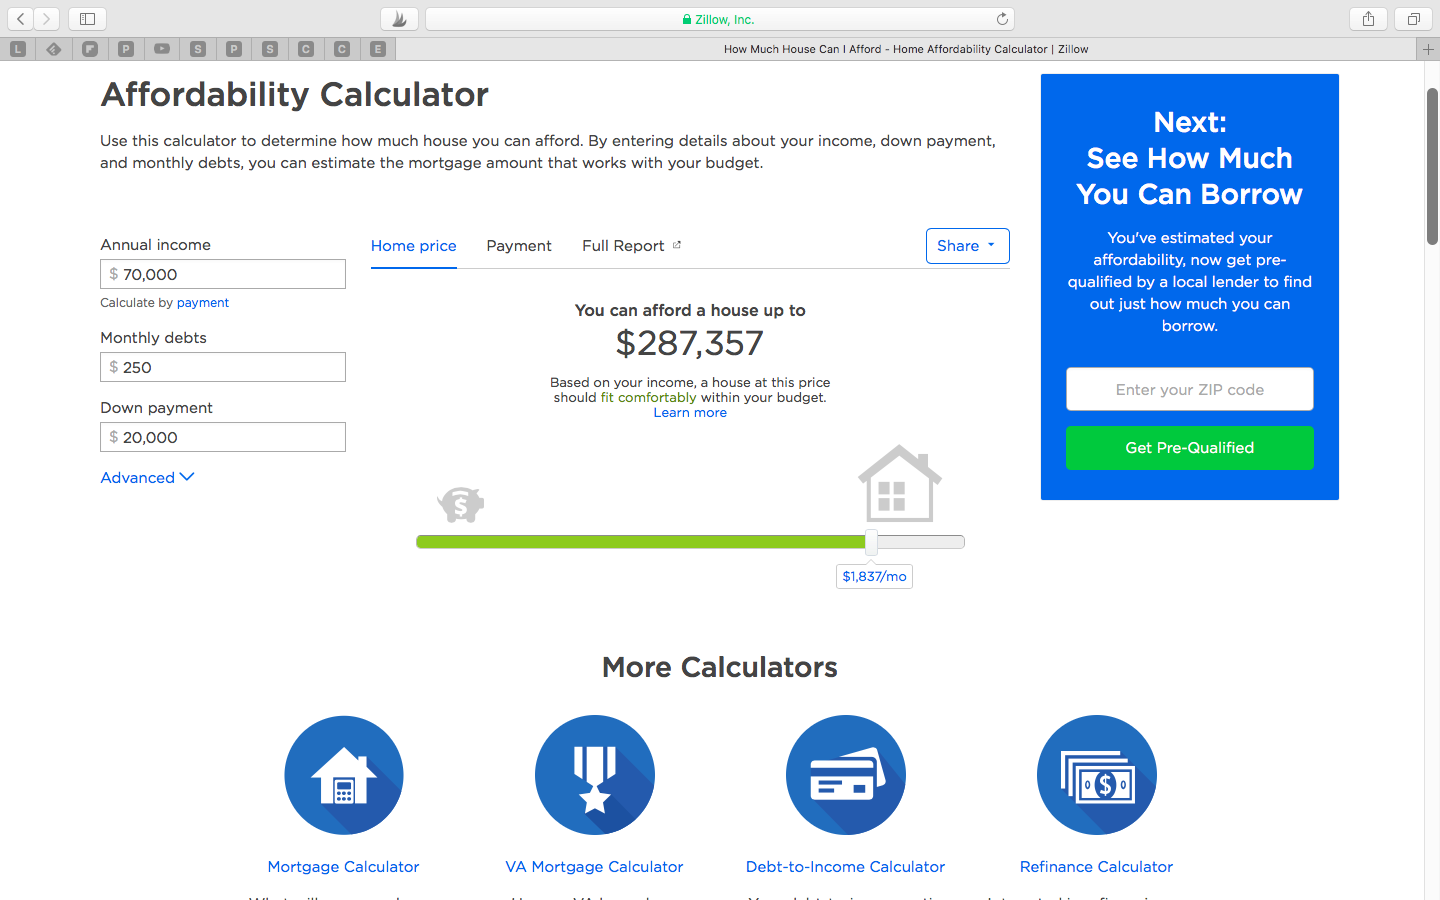 Zillow Mortgage Affordability Calculator